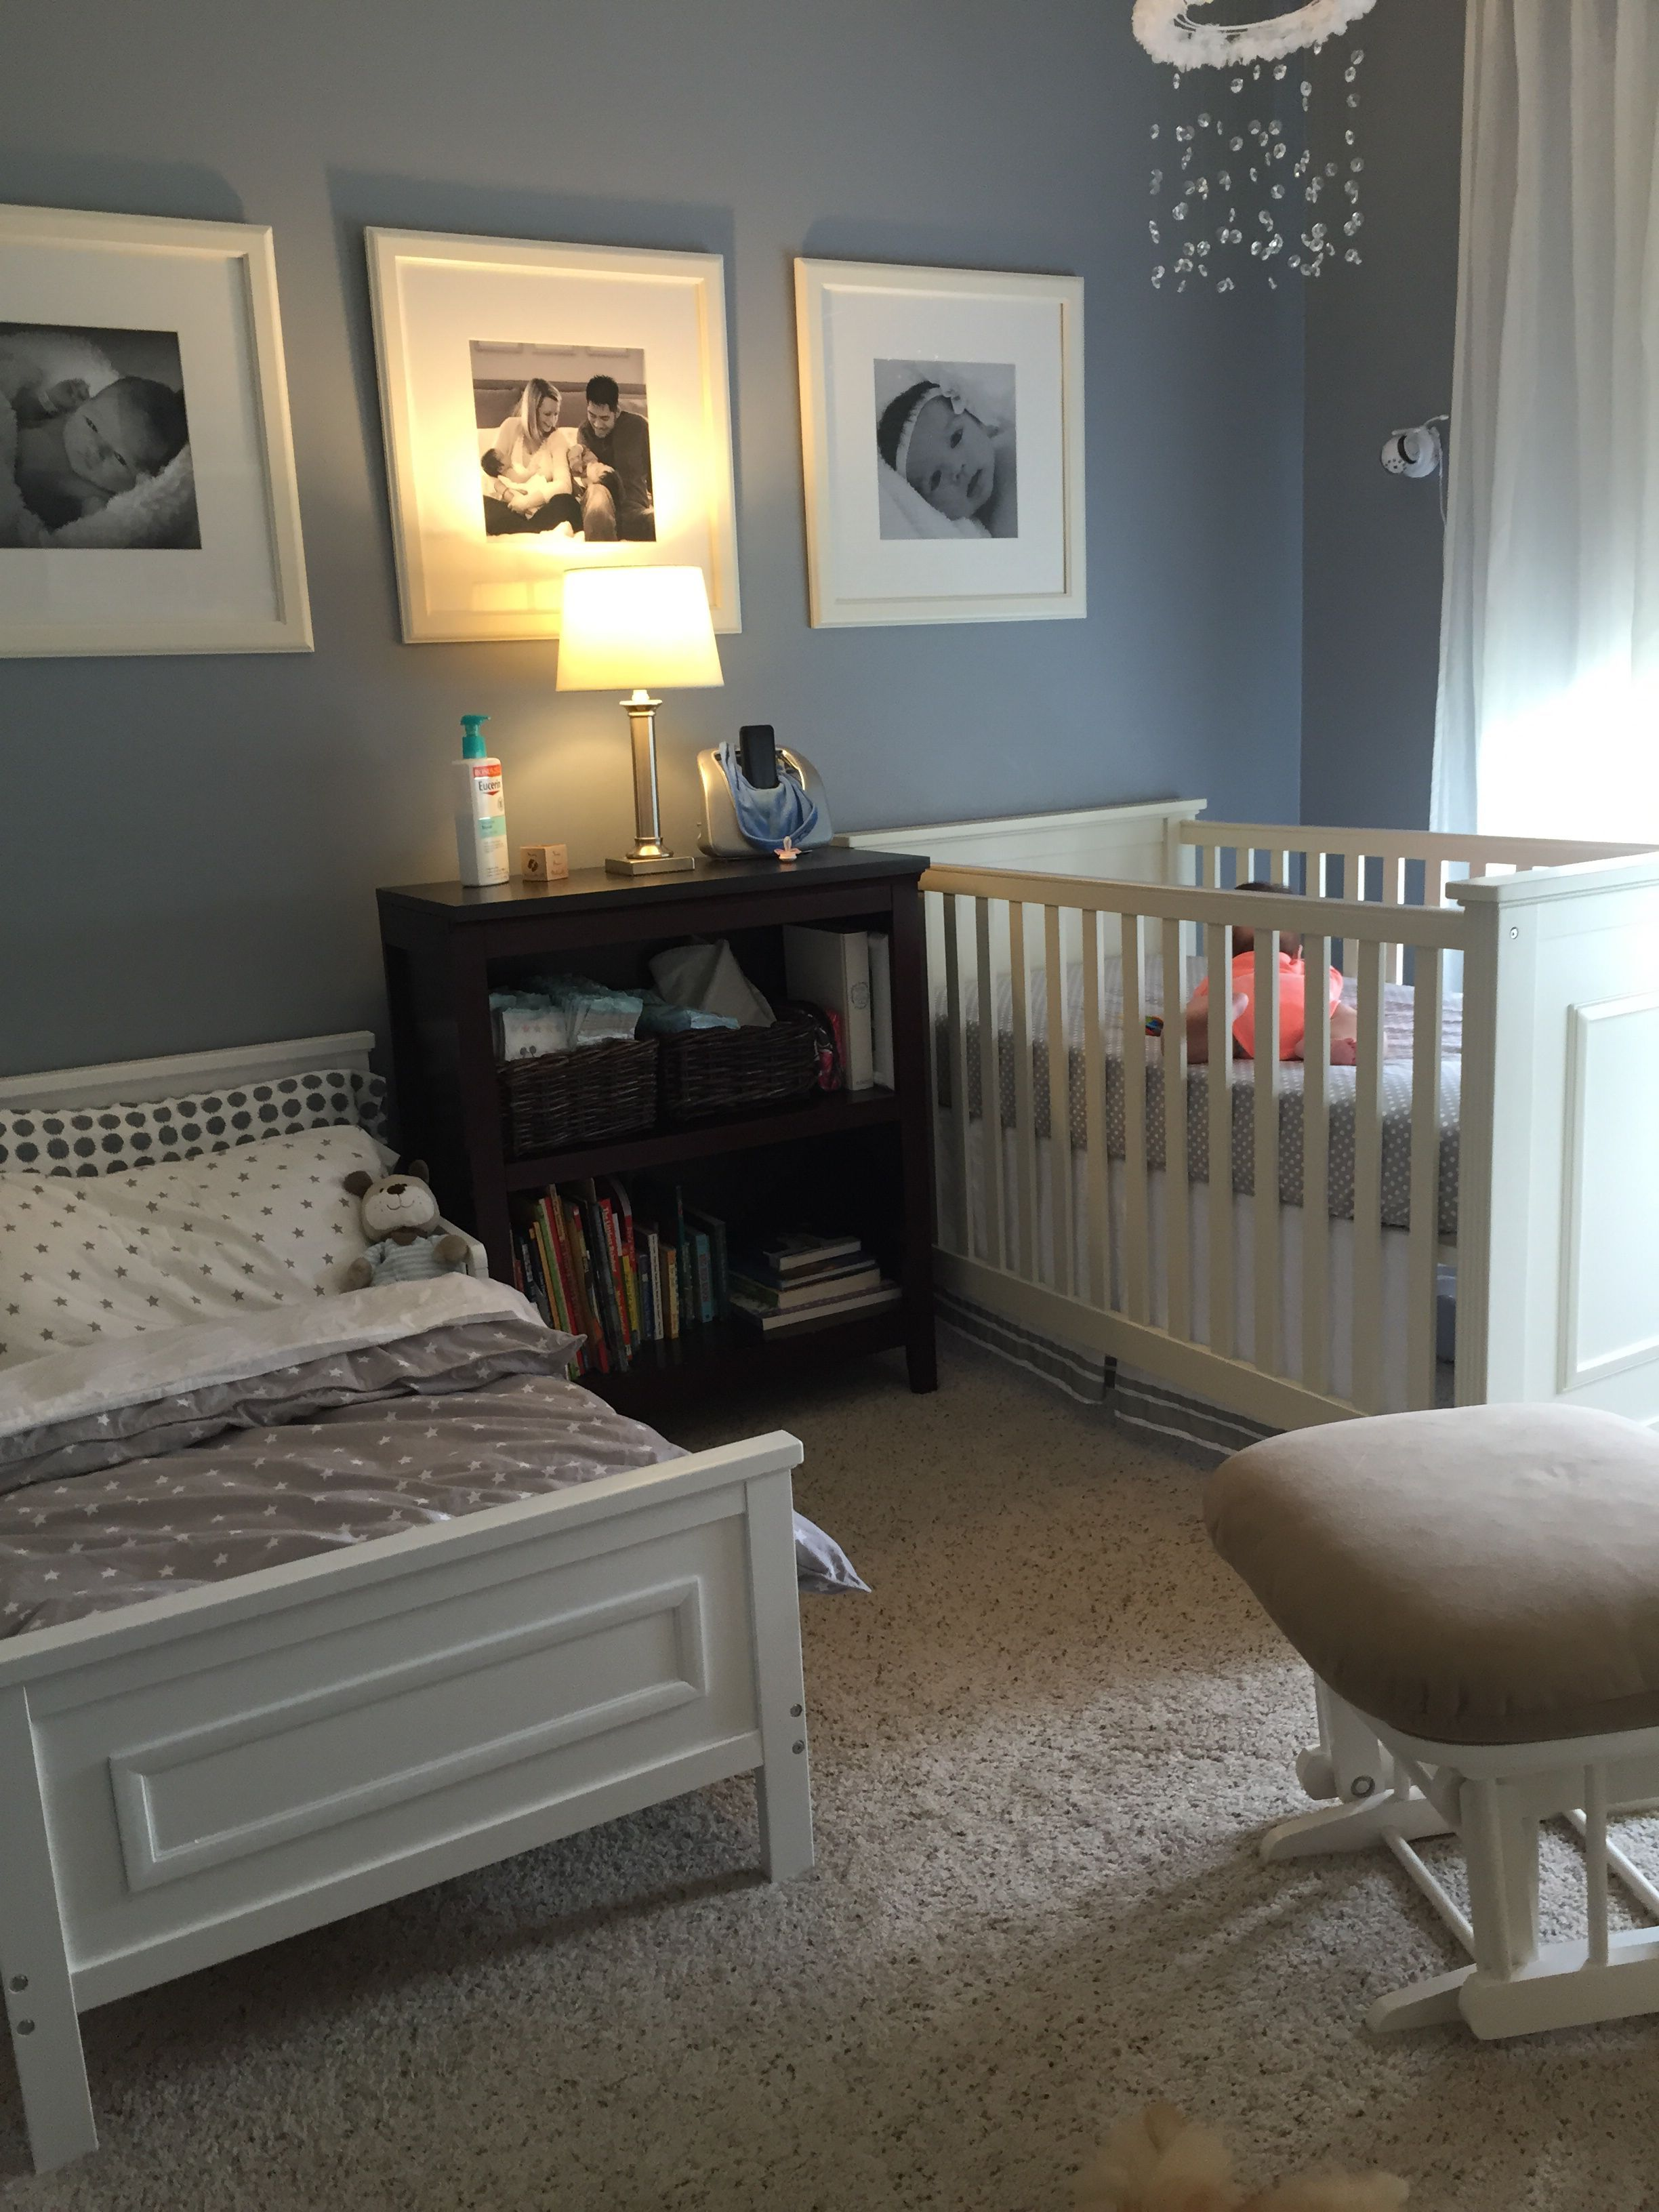 Toddler Boy Room Design: Neutral Room For Toddler Boy And Baby Girl.